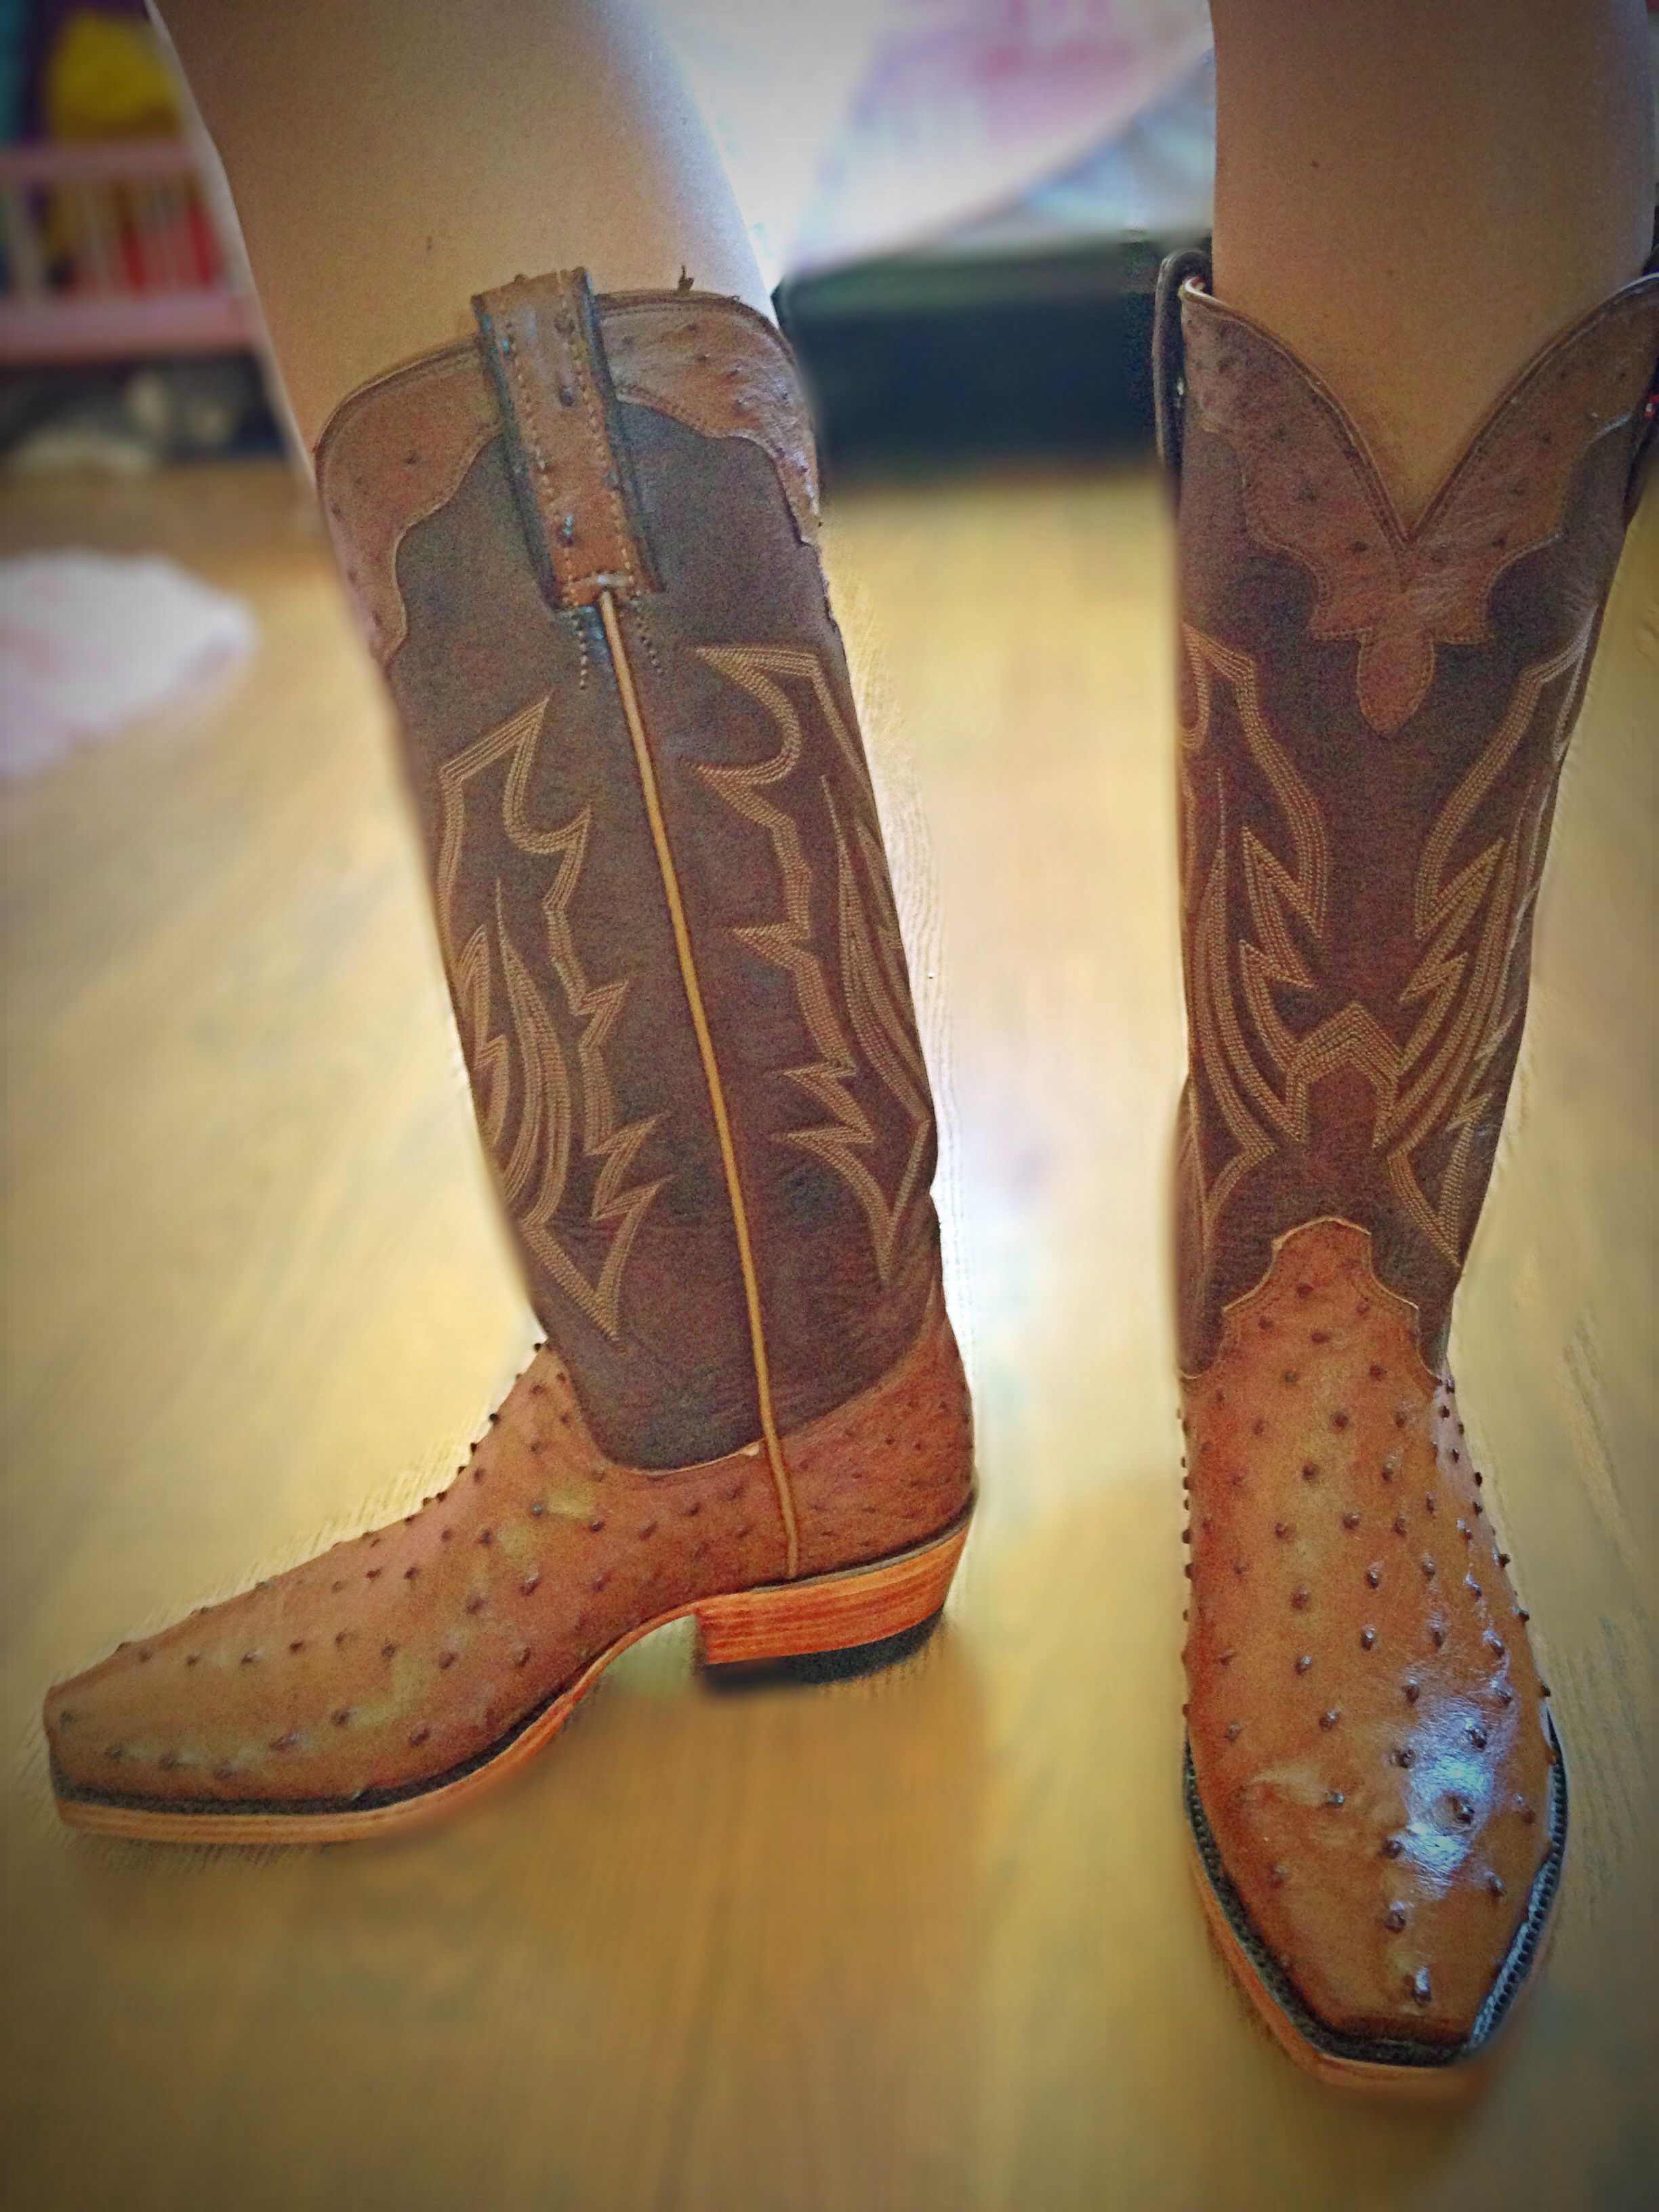 Custom cowboy boots designed by me!!!